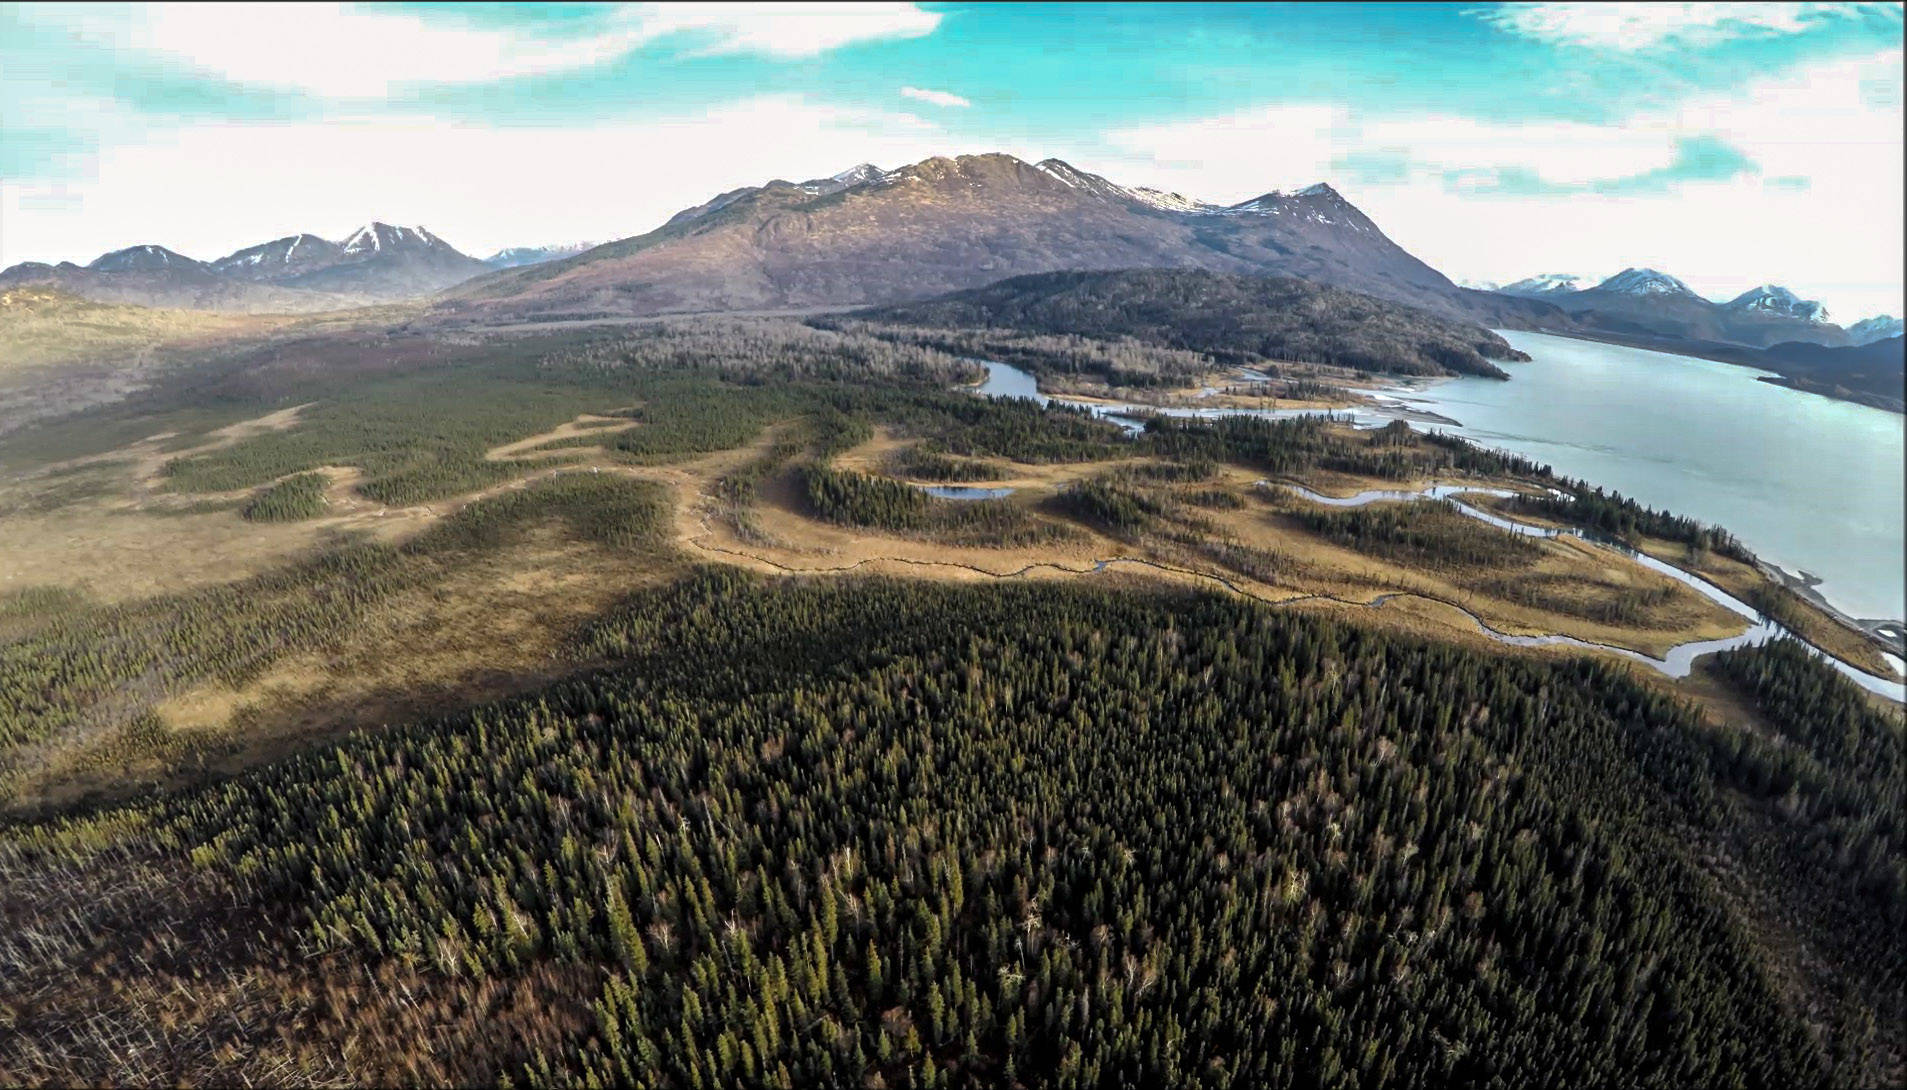 The beauty and expansiveness of the Kenai National Wildlife Refuge seen from an unmanned aircraft in the upper Kenai River and Skilak Lake. (Photo by Mark Laker, USFWS)